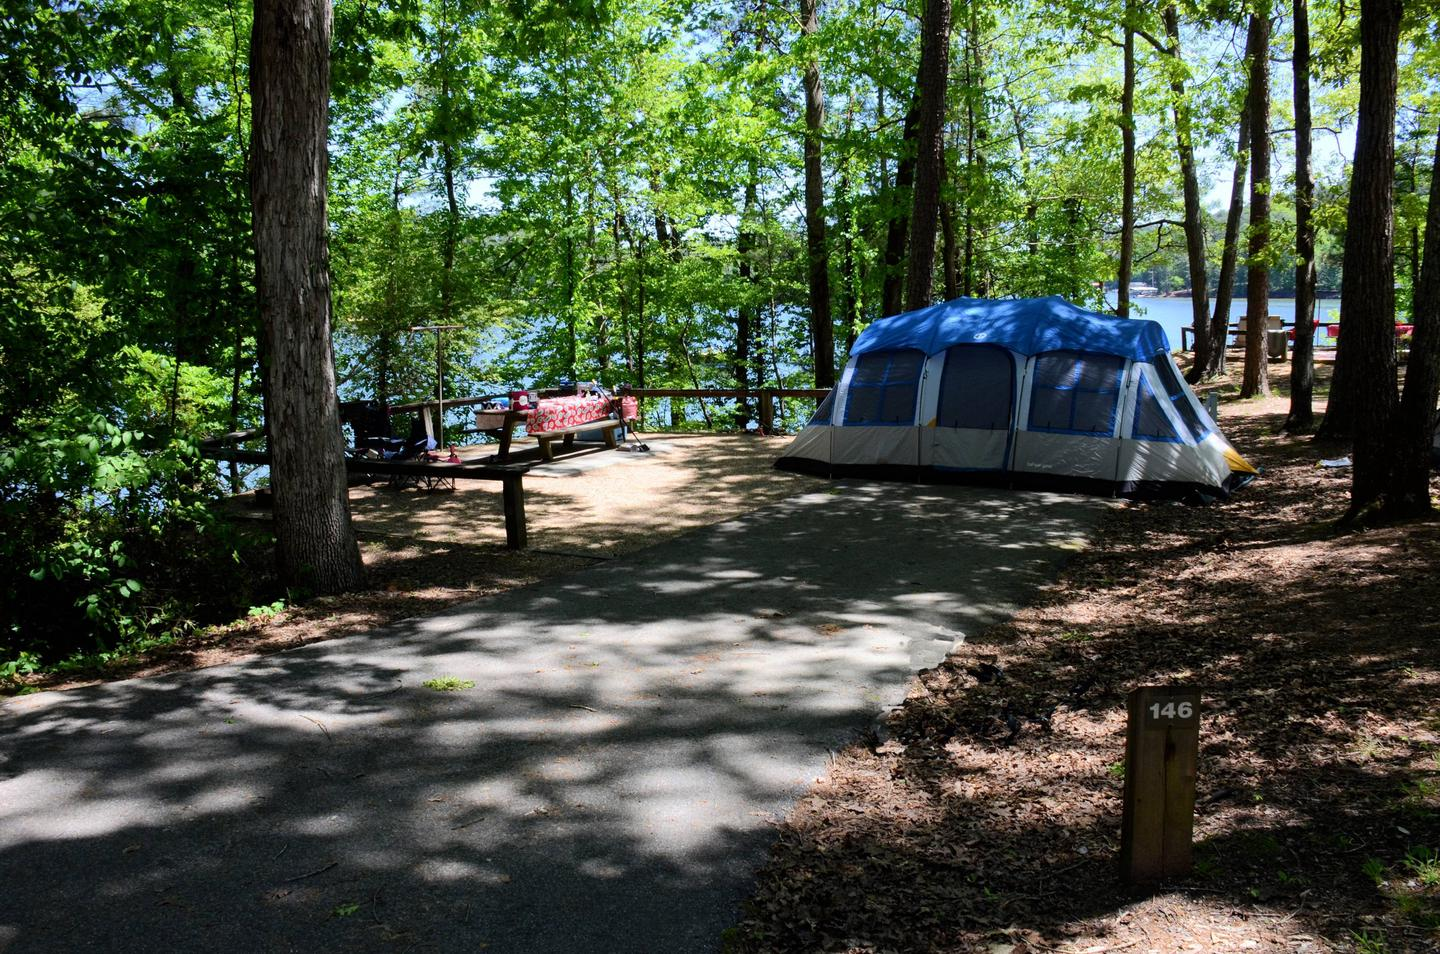 Driveway slope, campsite view, utilities-side clearance, awning-side clearance.McKinney Campground, campsite 146